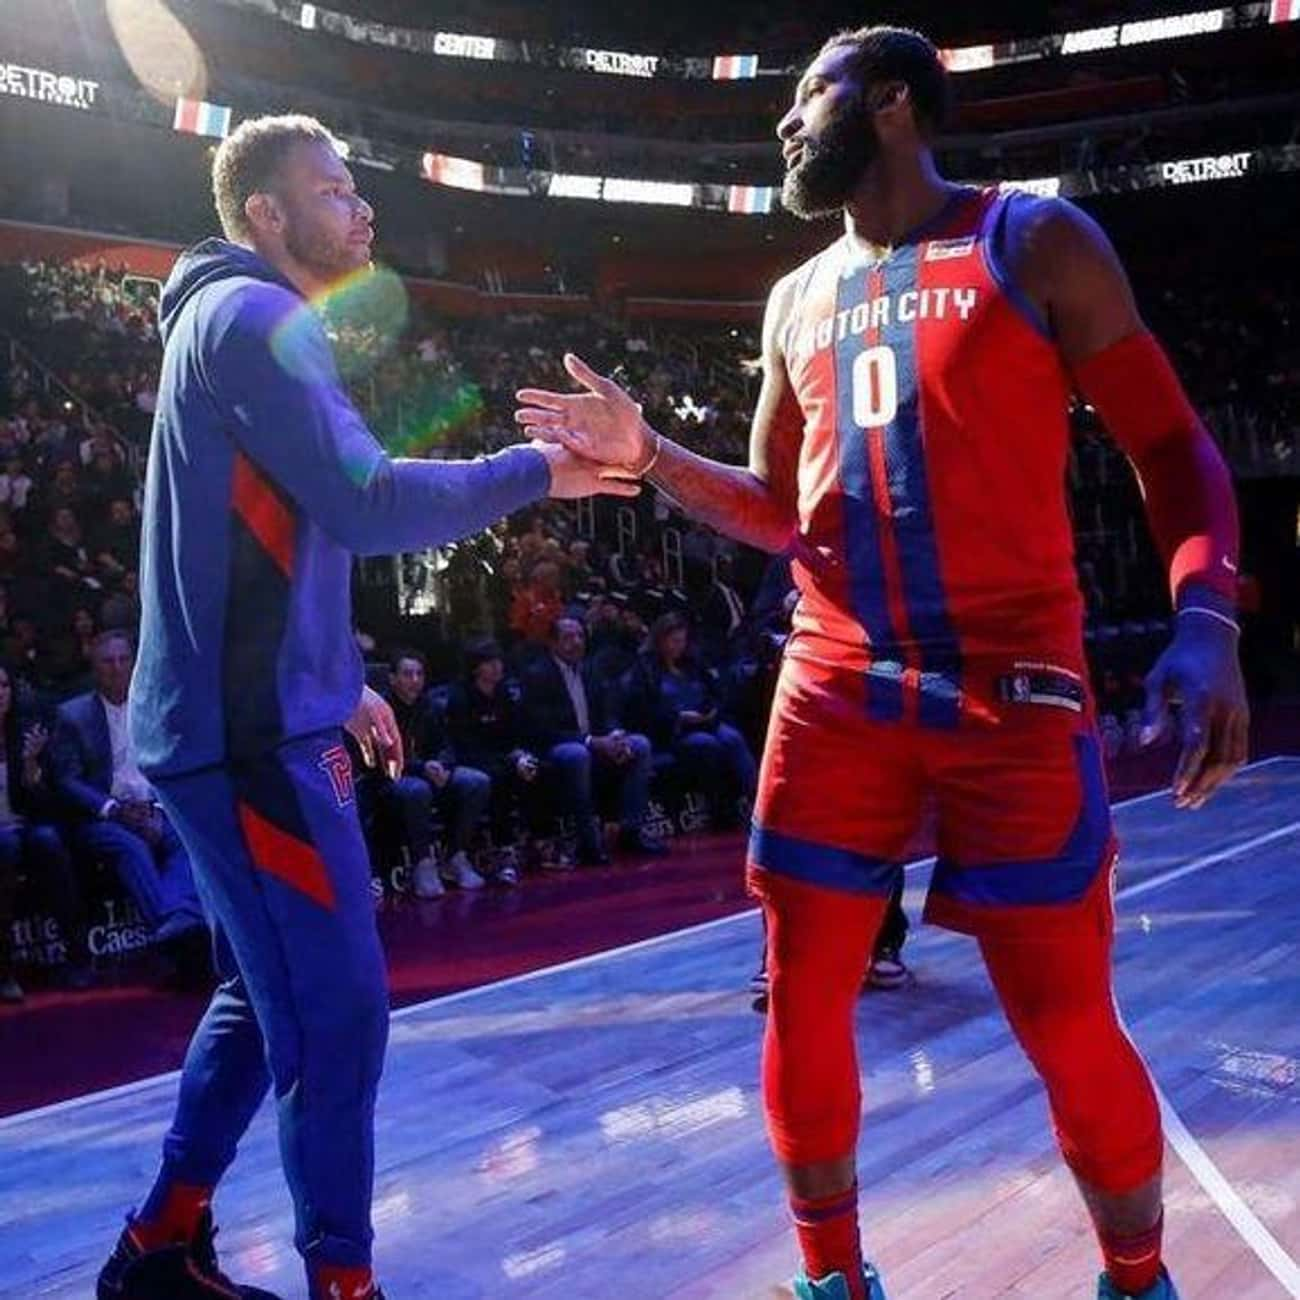 Detroit Pistons is listed (or ranked) 1 on the list The Ugliest NBA Jerseys Of The 2019-2020 Season